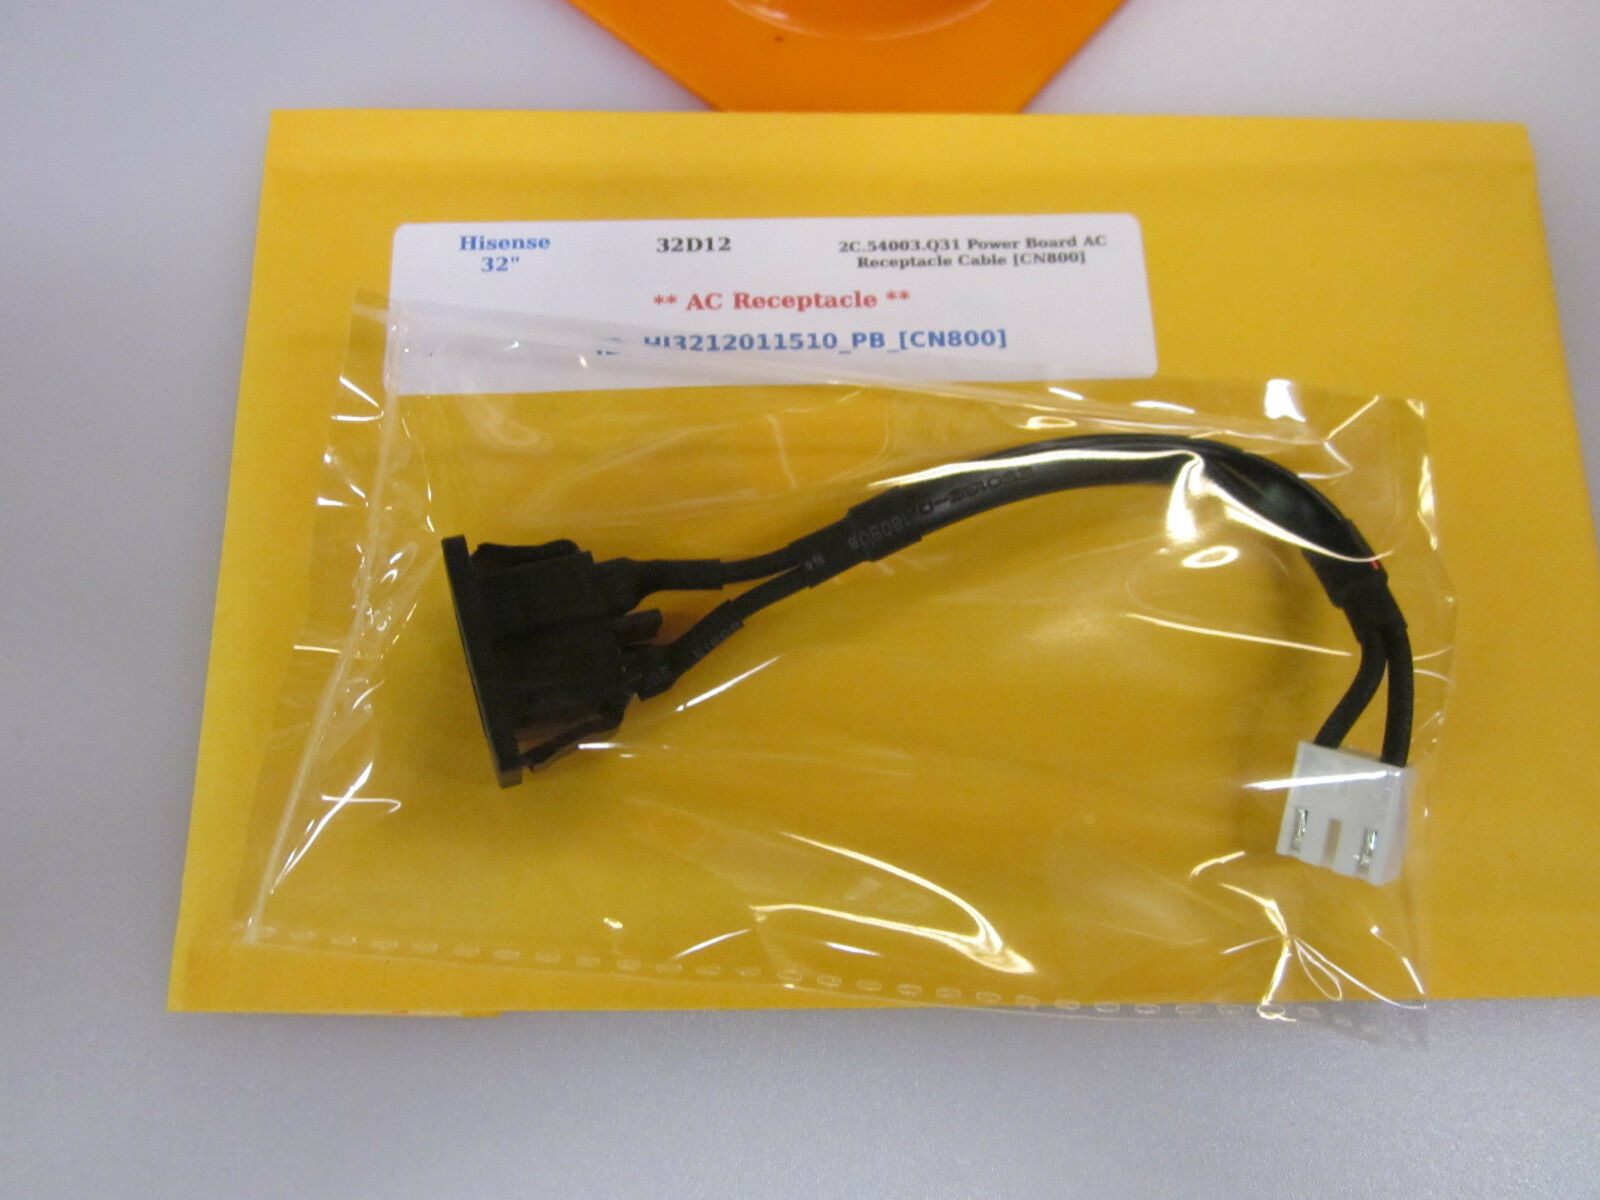 "Primary image for Hisense 32"" 32D12 2C.54003.Q31 Power Board AC Receptacle Cable [CN800]"